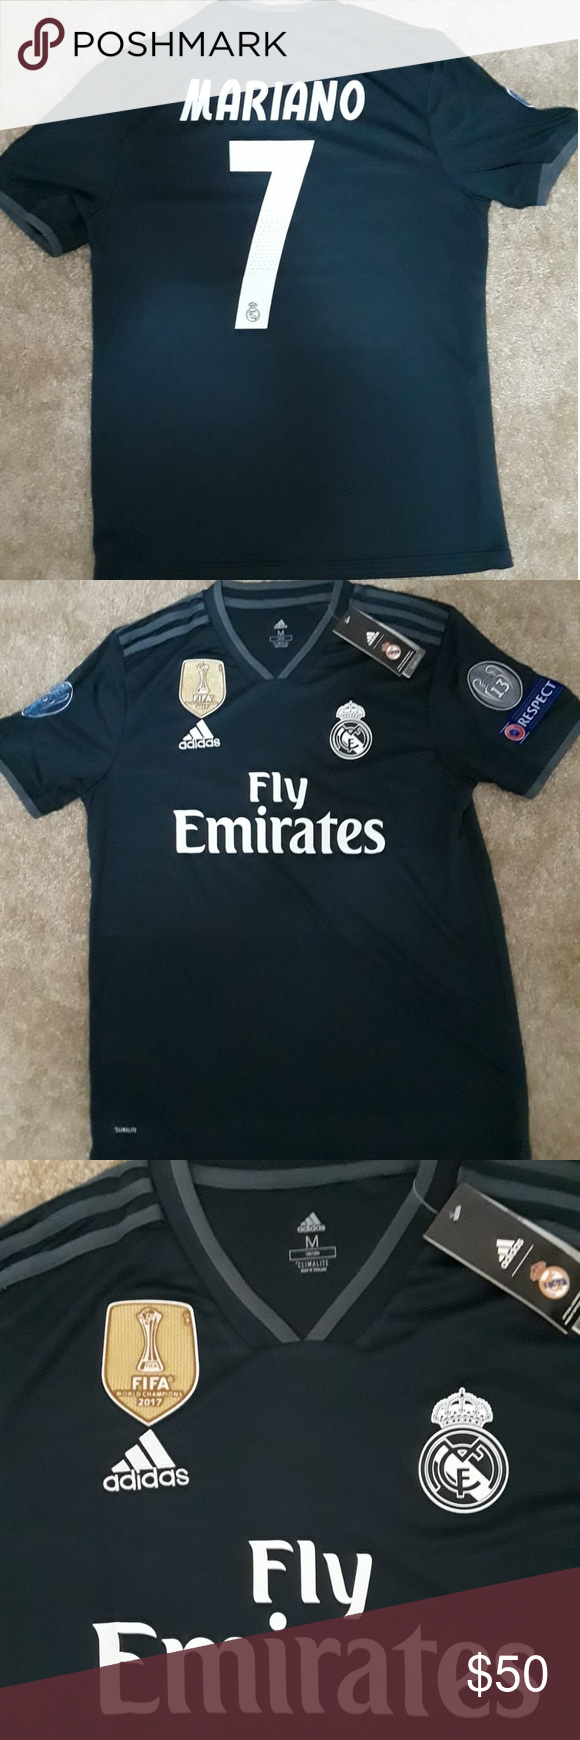 Real Madrid Away 18 19 Jersey MARIANO 7 Real Madrid Away 18 19 Jersey  MARIANO 7 -Top quality product -Fast 1-3 days shipping adidas Shirts Tees -  Short ... 7fade344b